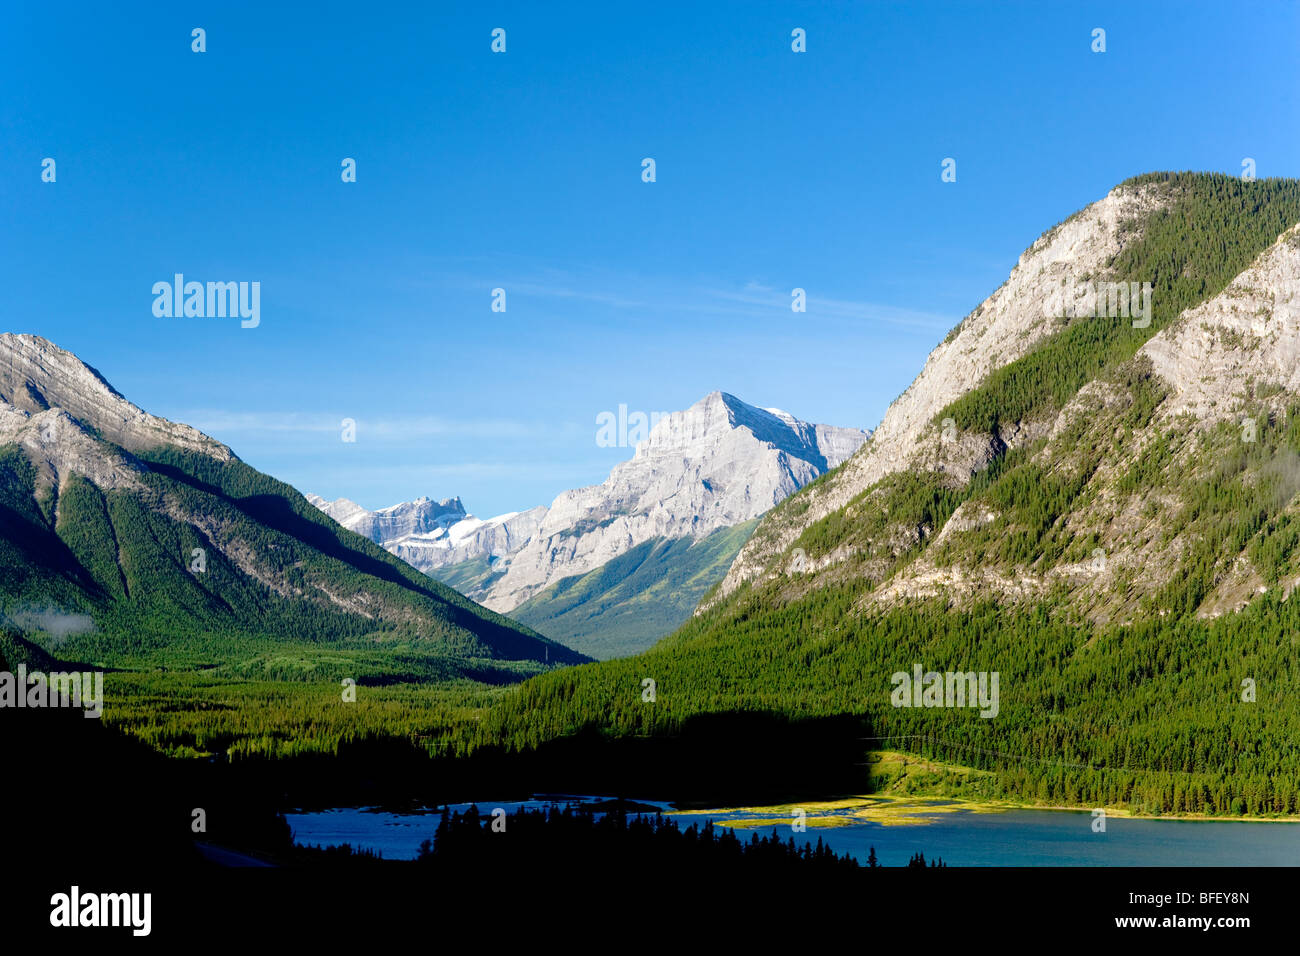 Le Lac Barrier, Kananaskis, Alberta, Canada, lac, montagne, Rocheuses, formation géologique, forest Photo Stock